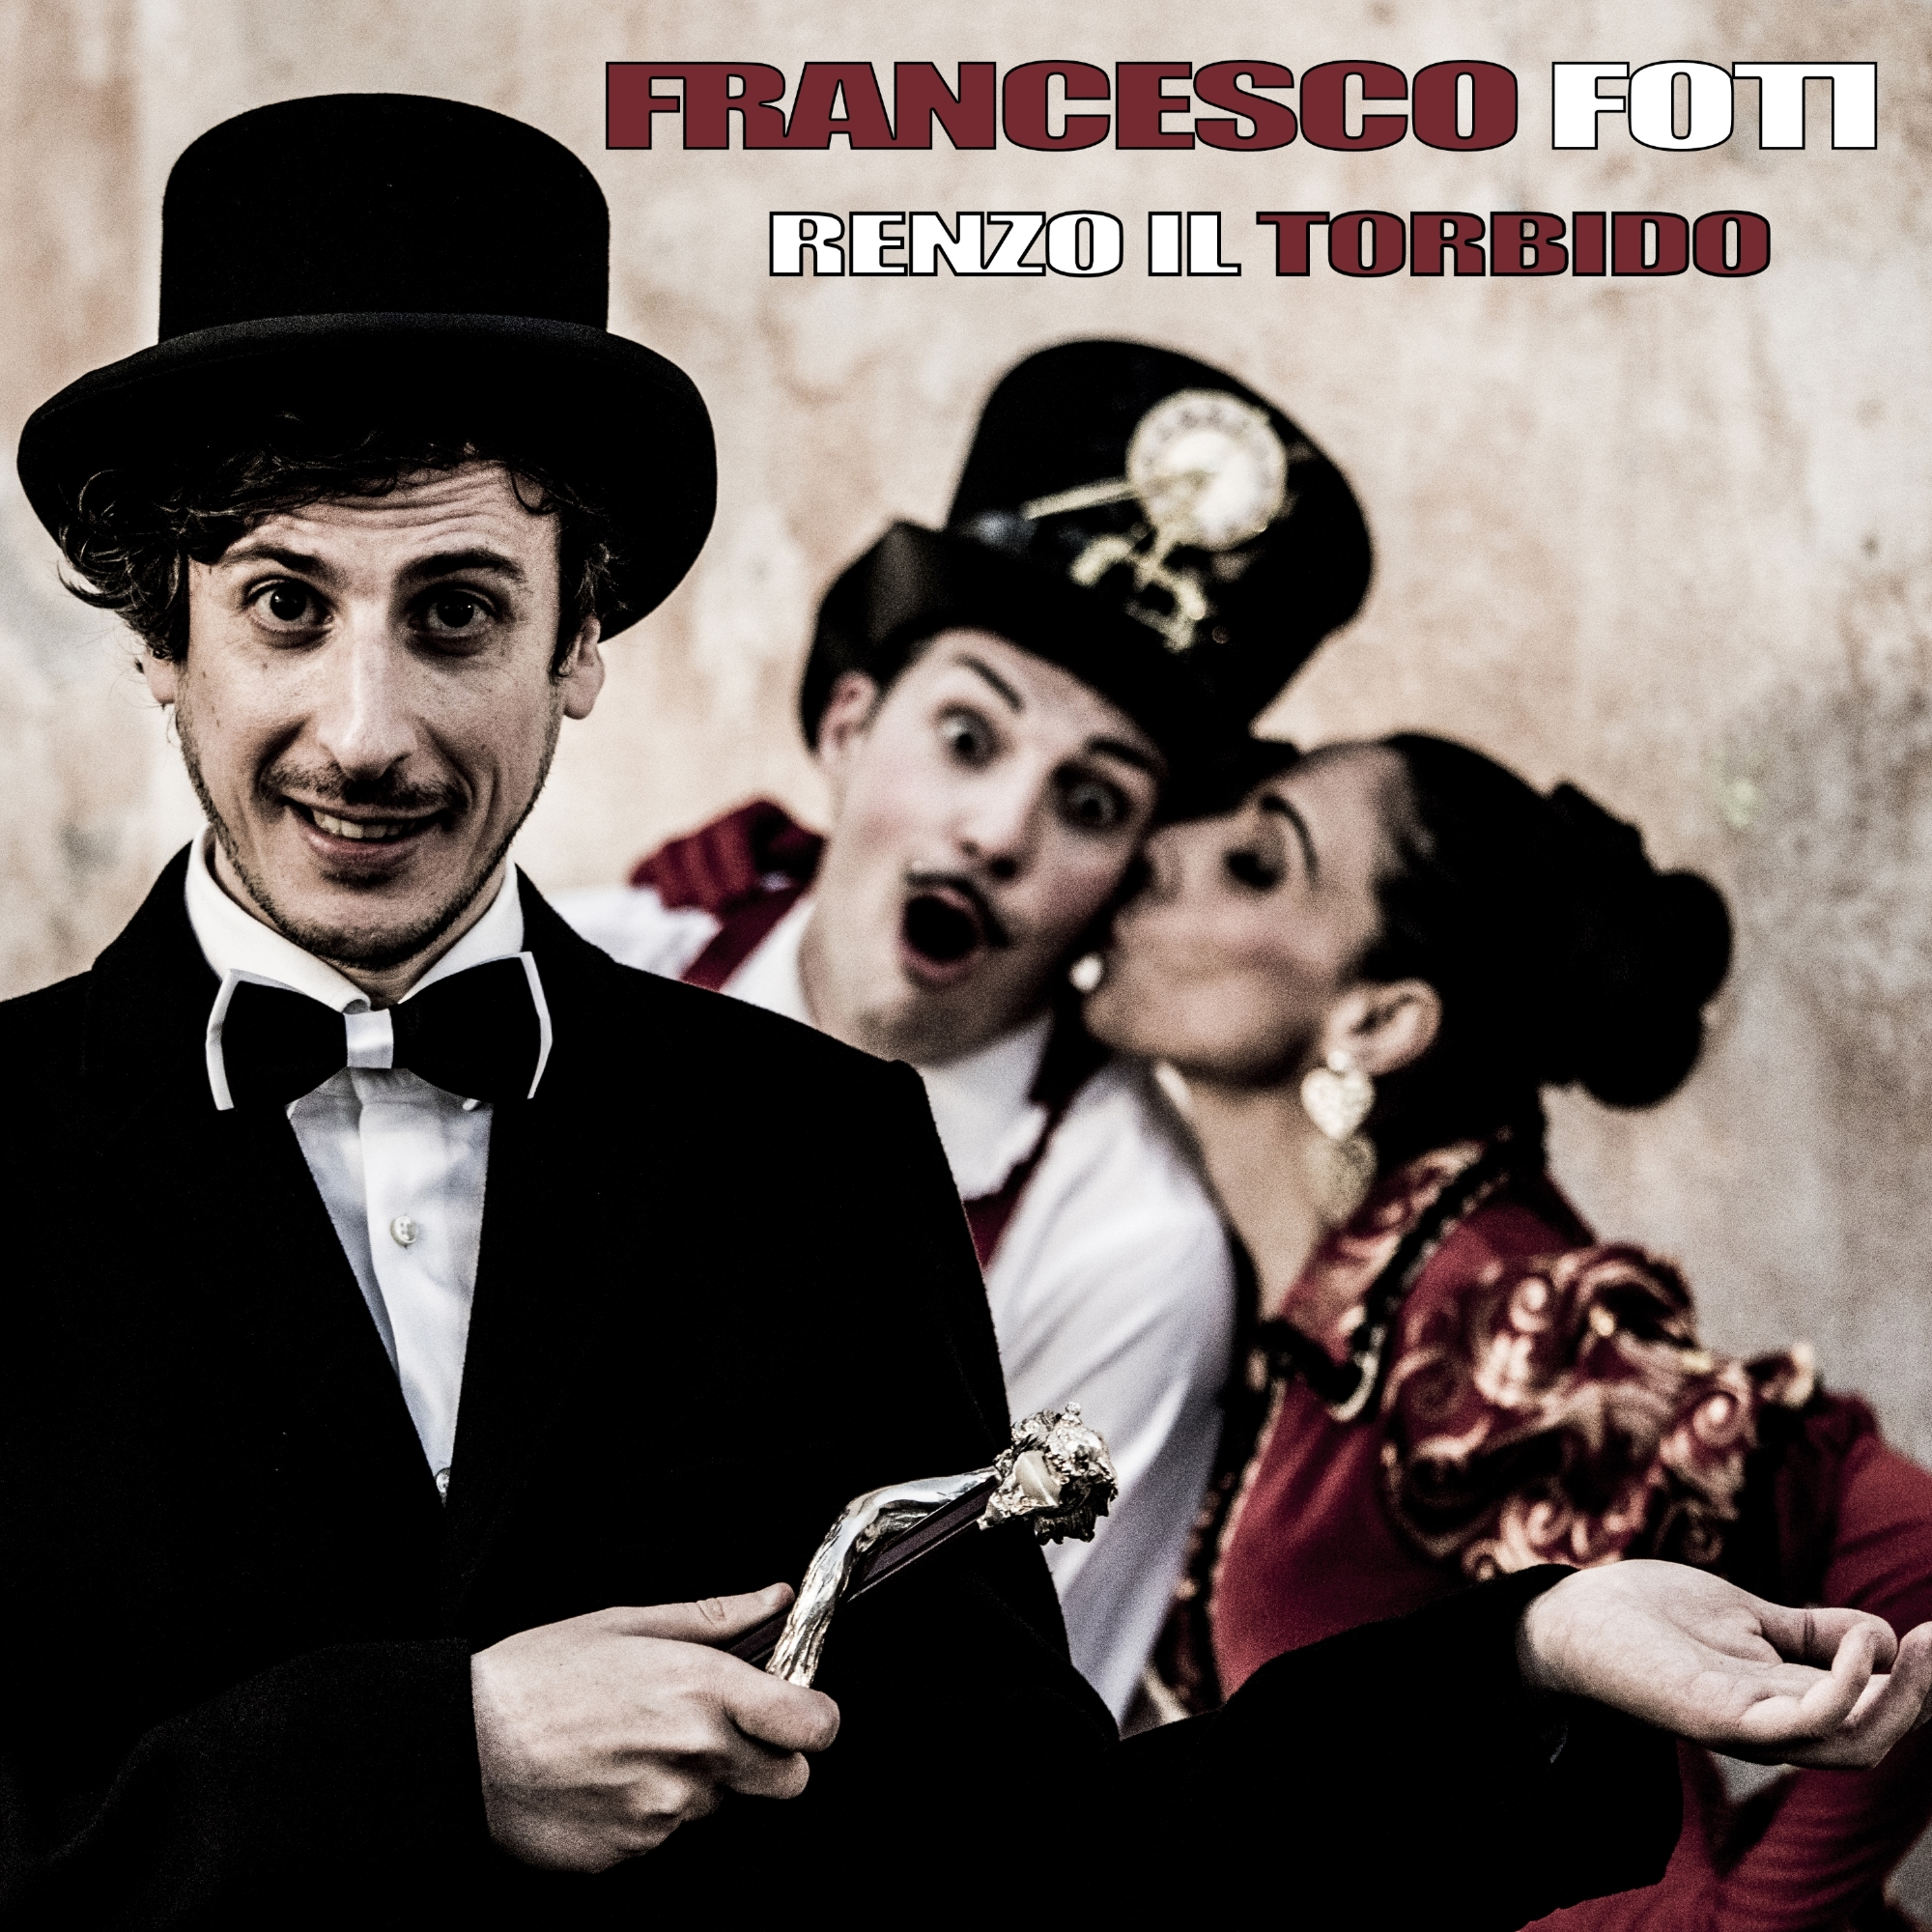 https://i2.wp.com/www.francescofoti.net/wp-content/uploads/2013/08/Francesco-Foti-Copertina-Renzo-il-torbido.jpg